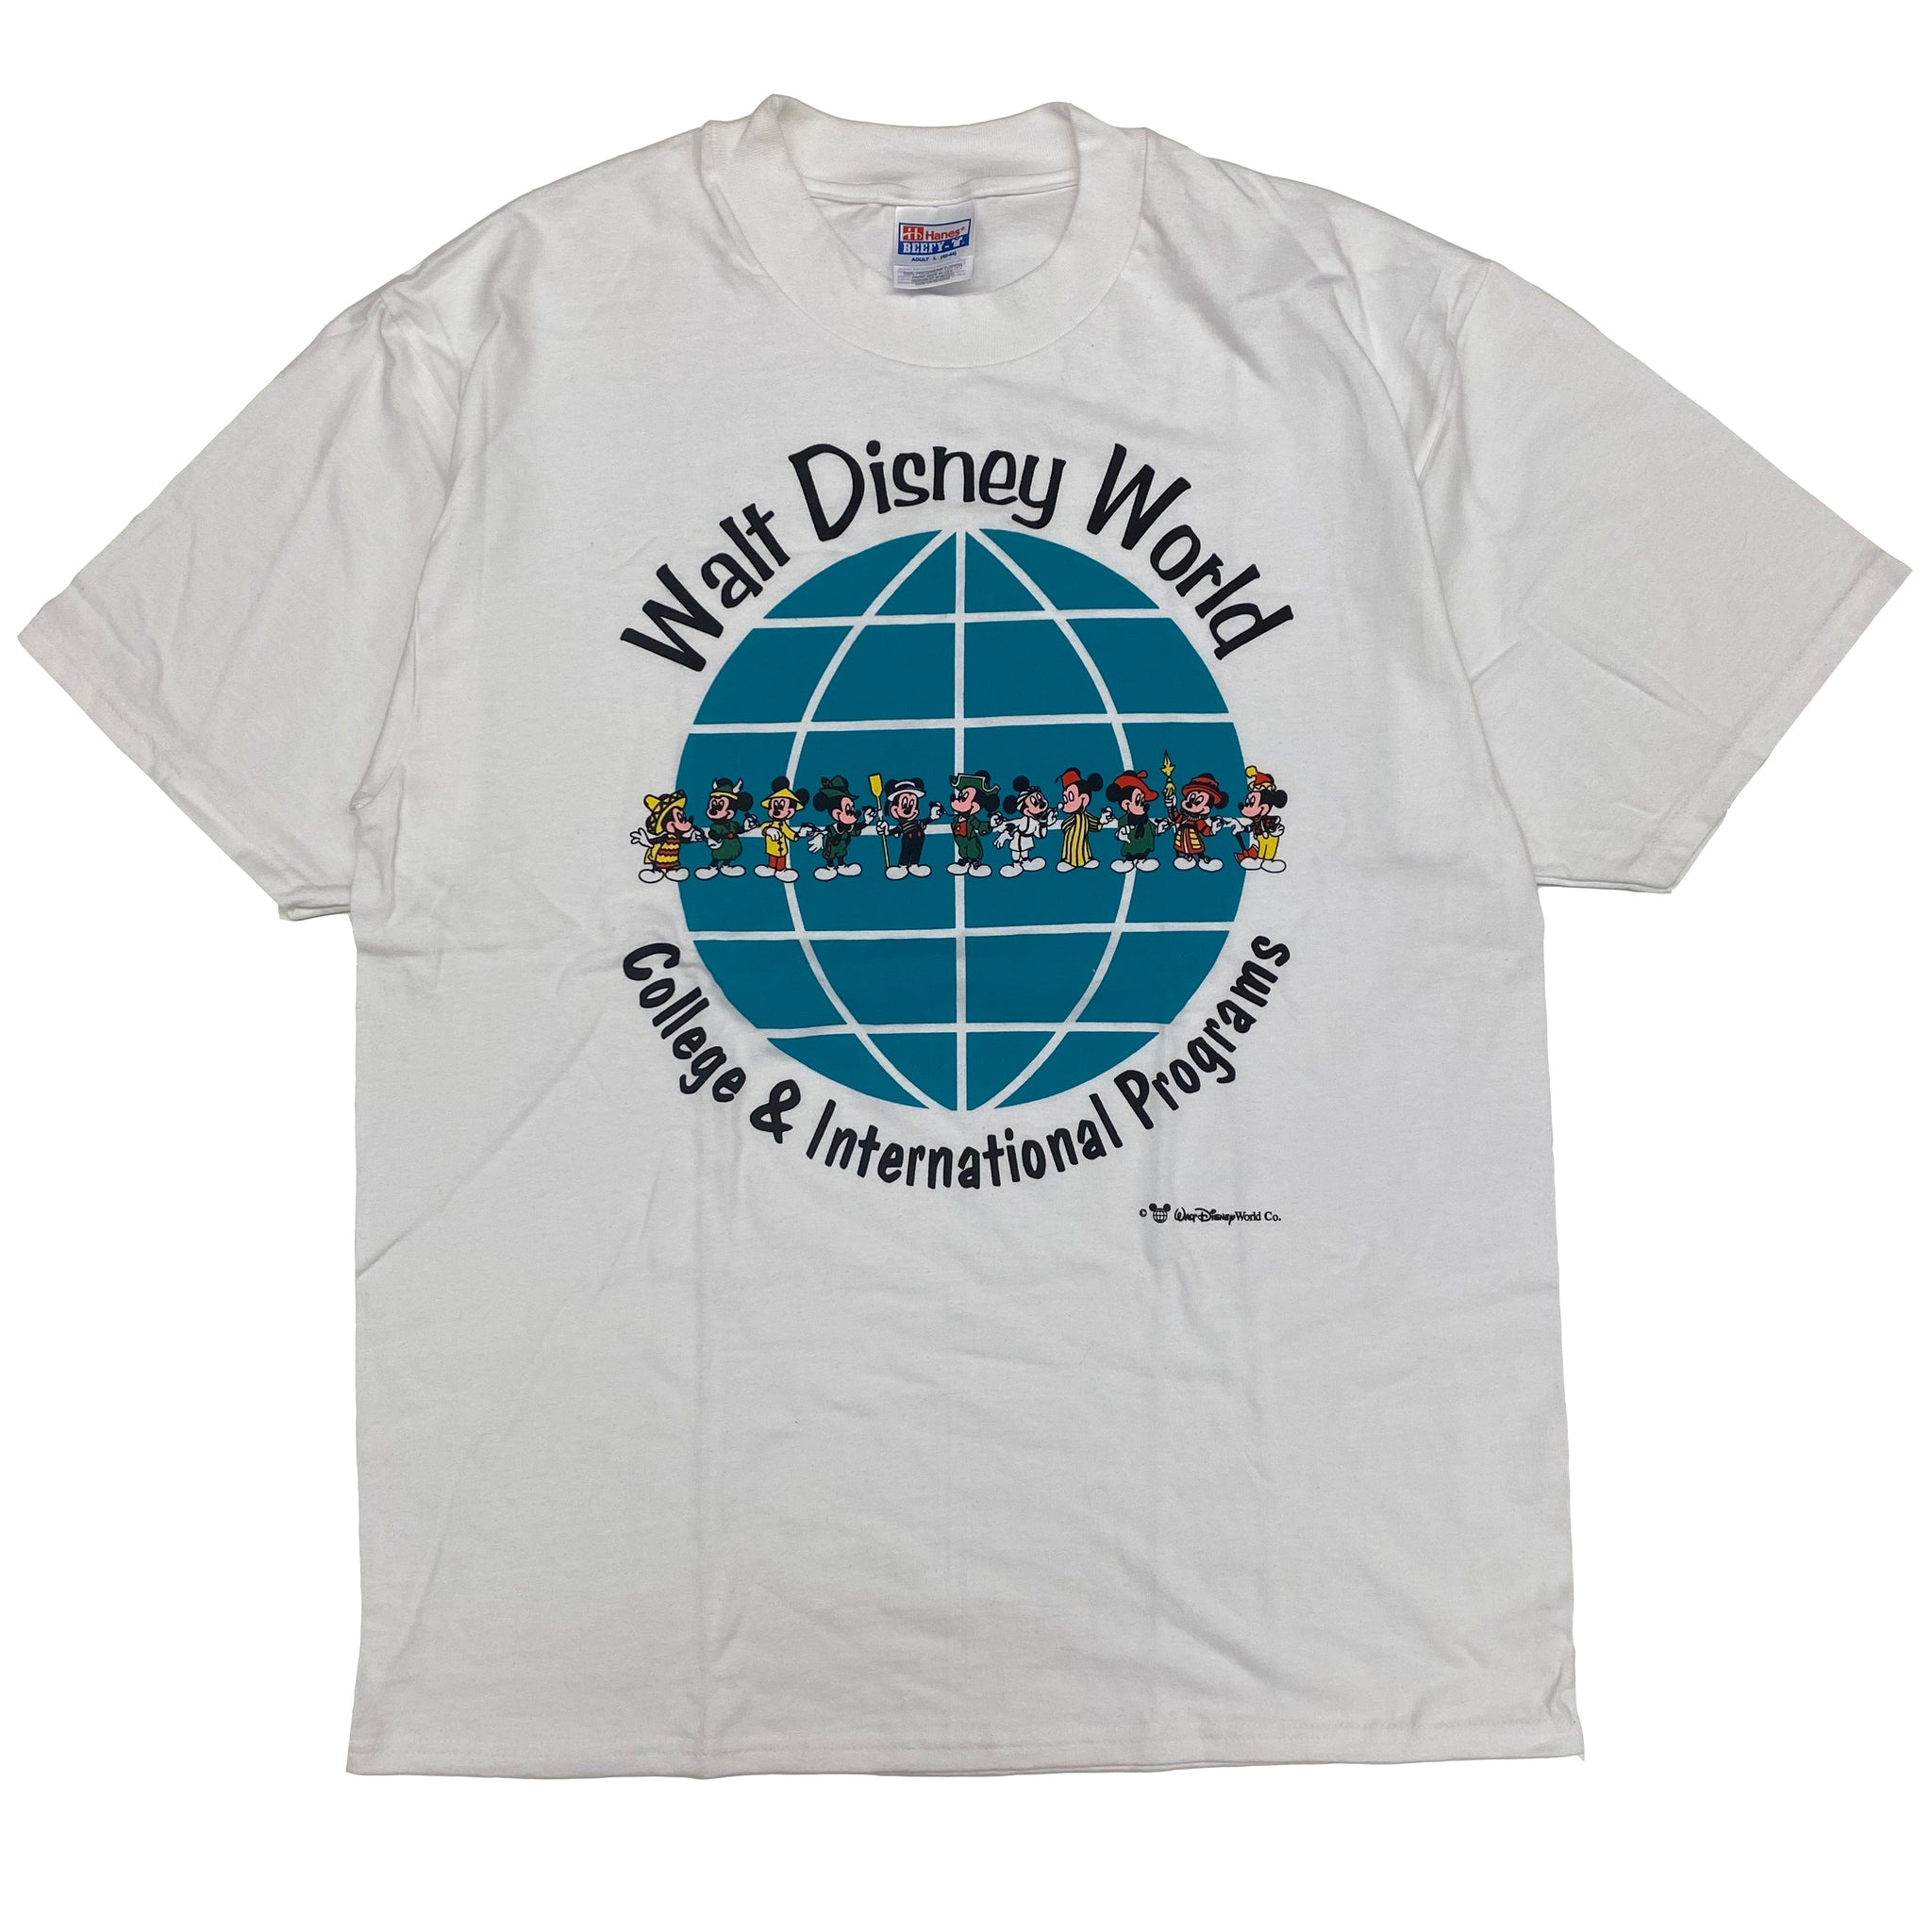 WDW College & Int'l Program  - L - VTG '90s